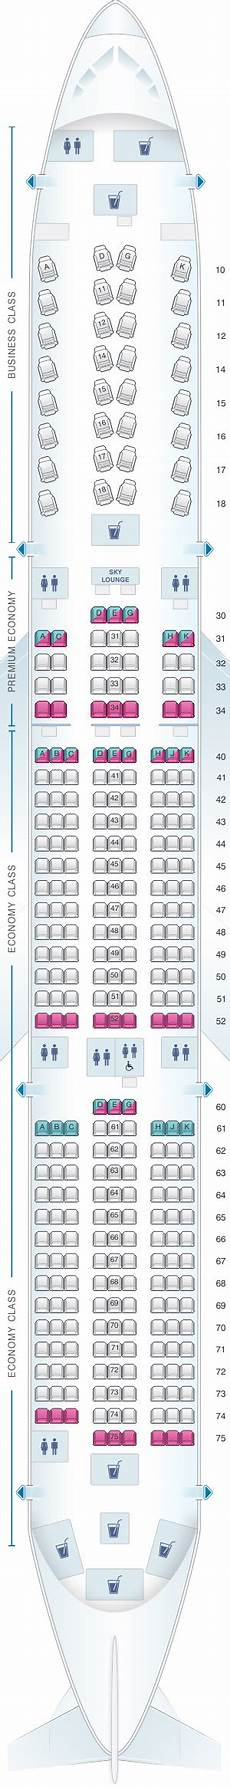 Airbus A350 900 Seating Chart Seat Map China Airlines Airbus A350 900 Seatmaestro